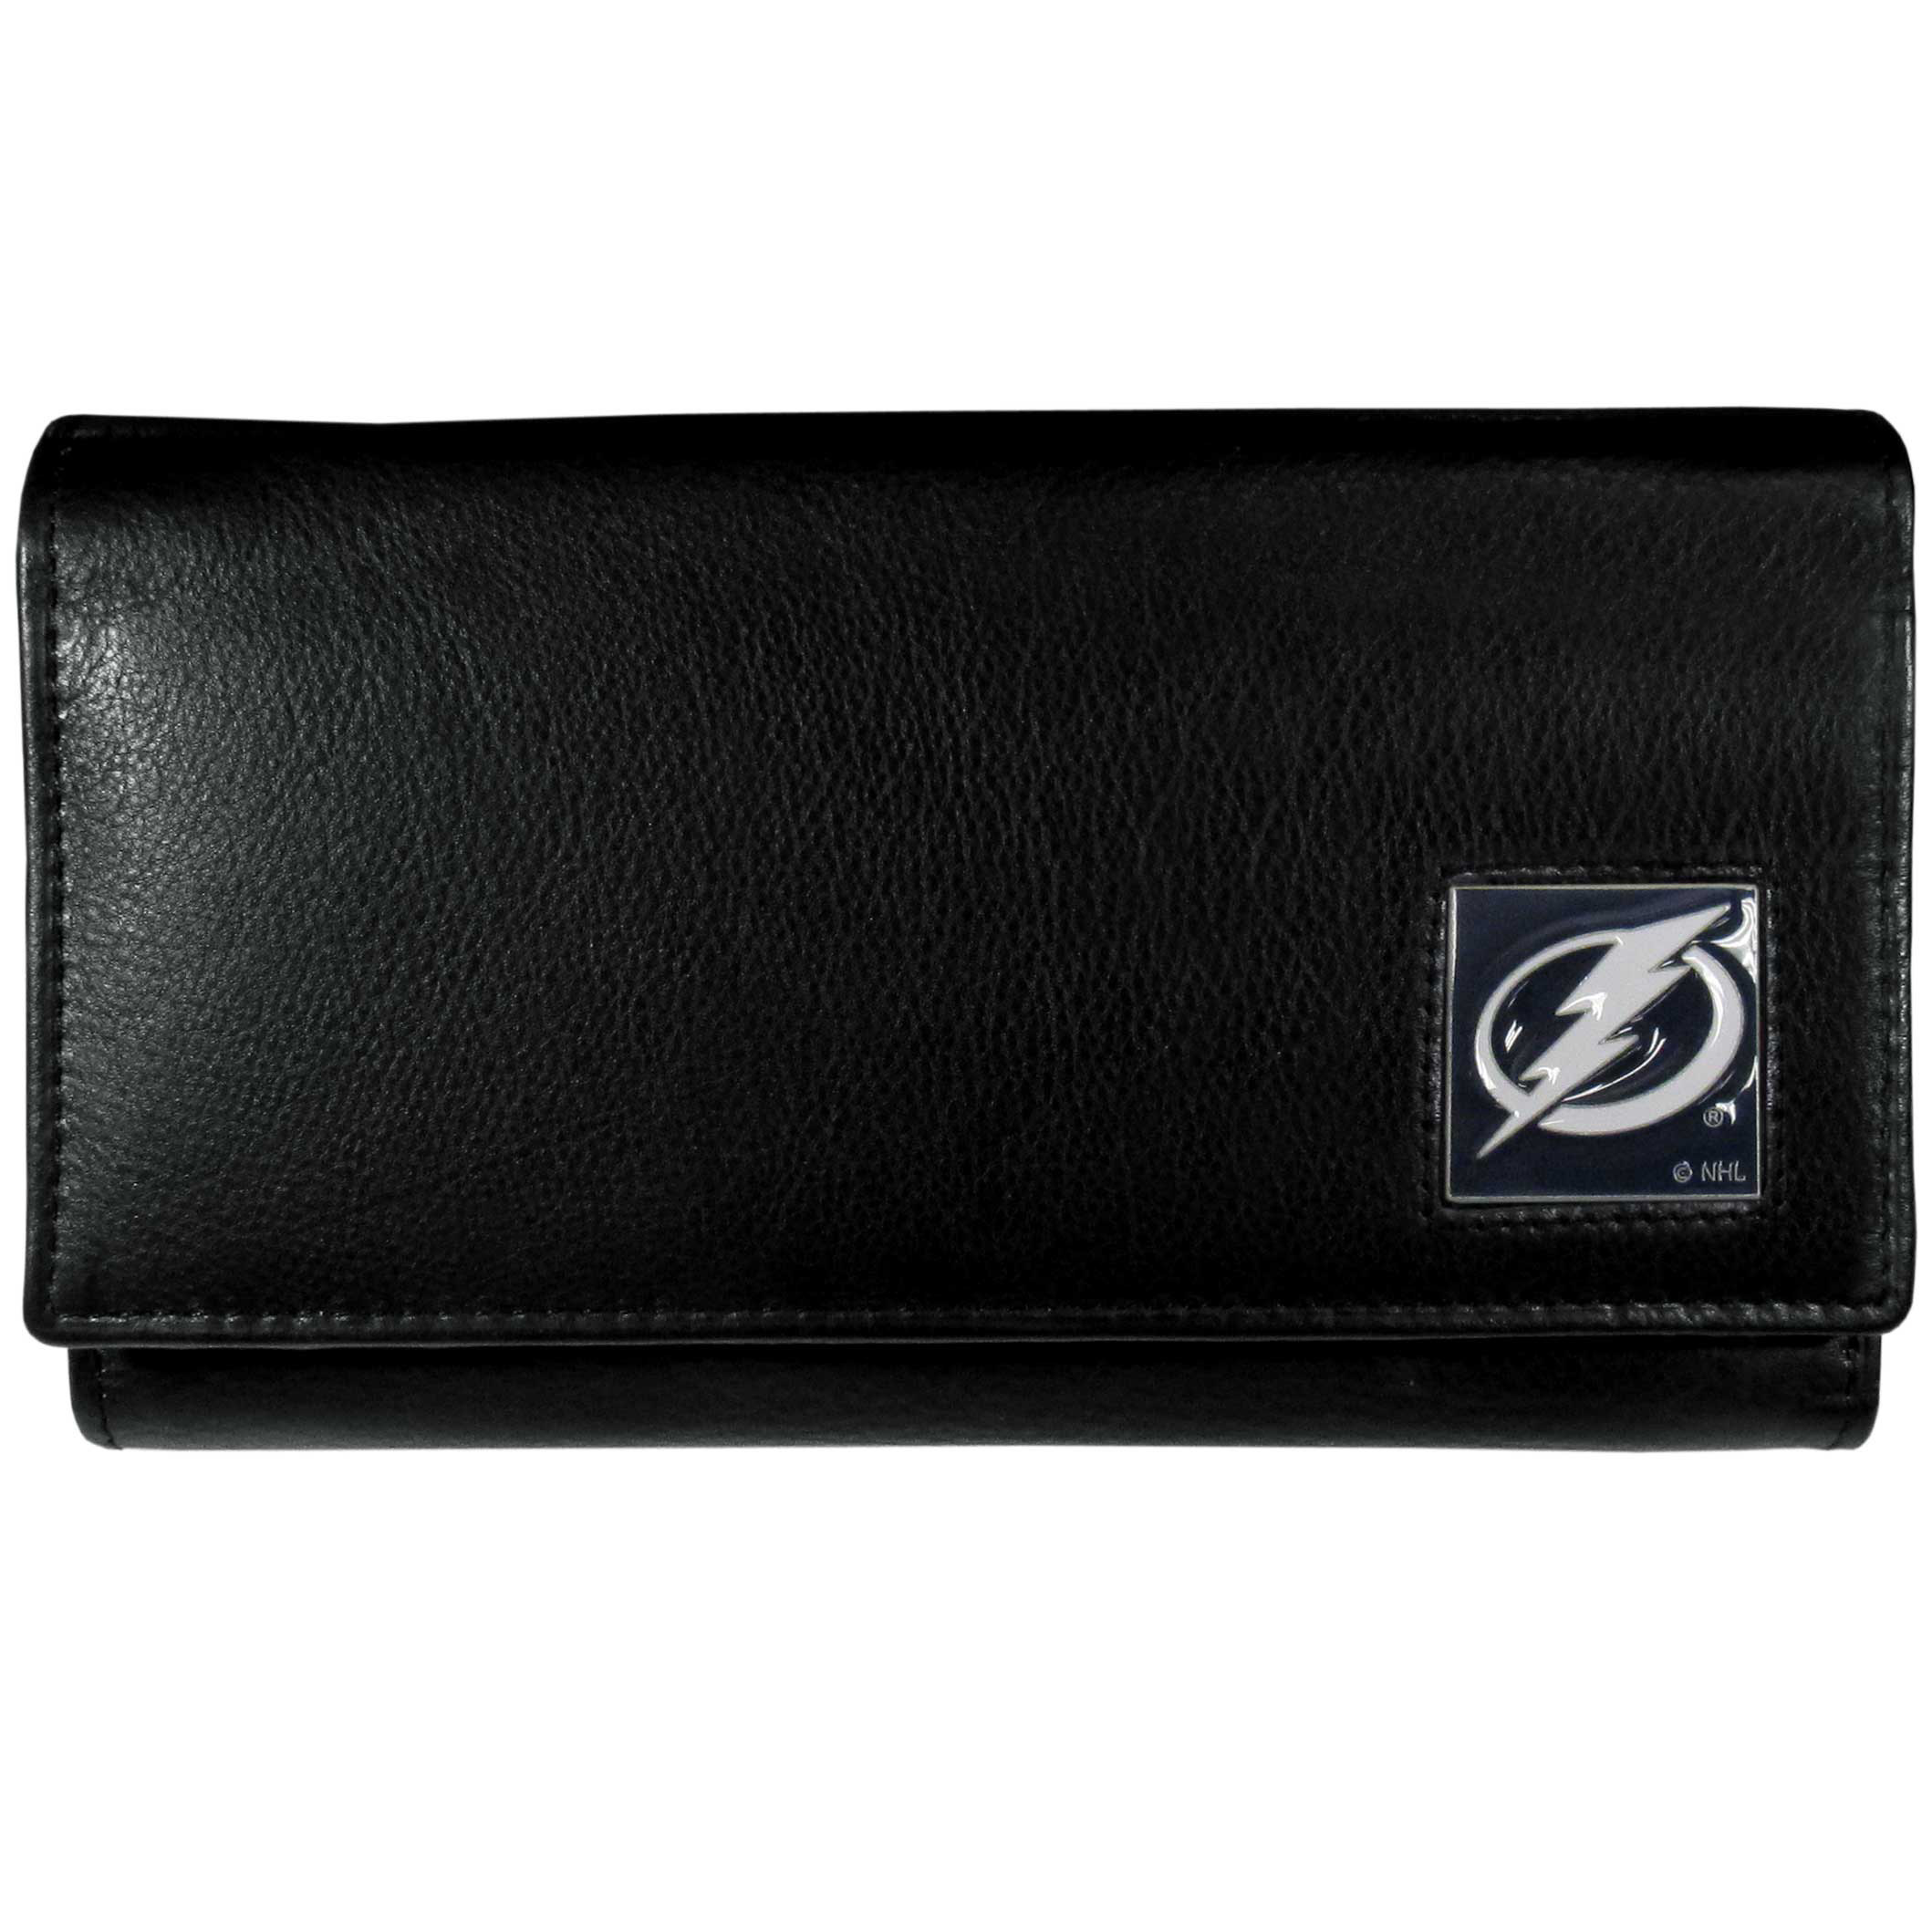 Tampa Bay Lightning® Leather Women's Wallet - This genuine leather women's pocketbook features 9 credit card slots, a windowed ID slot, spacious front pocket, inner pocket and zippered coin pocket. The front of the pocketbook has a hand painted metal square with the Tampa Bay Lightning® primary logo.